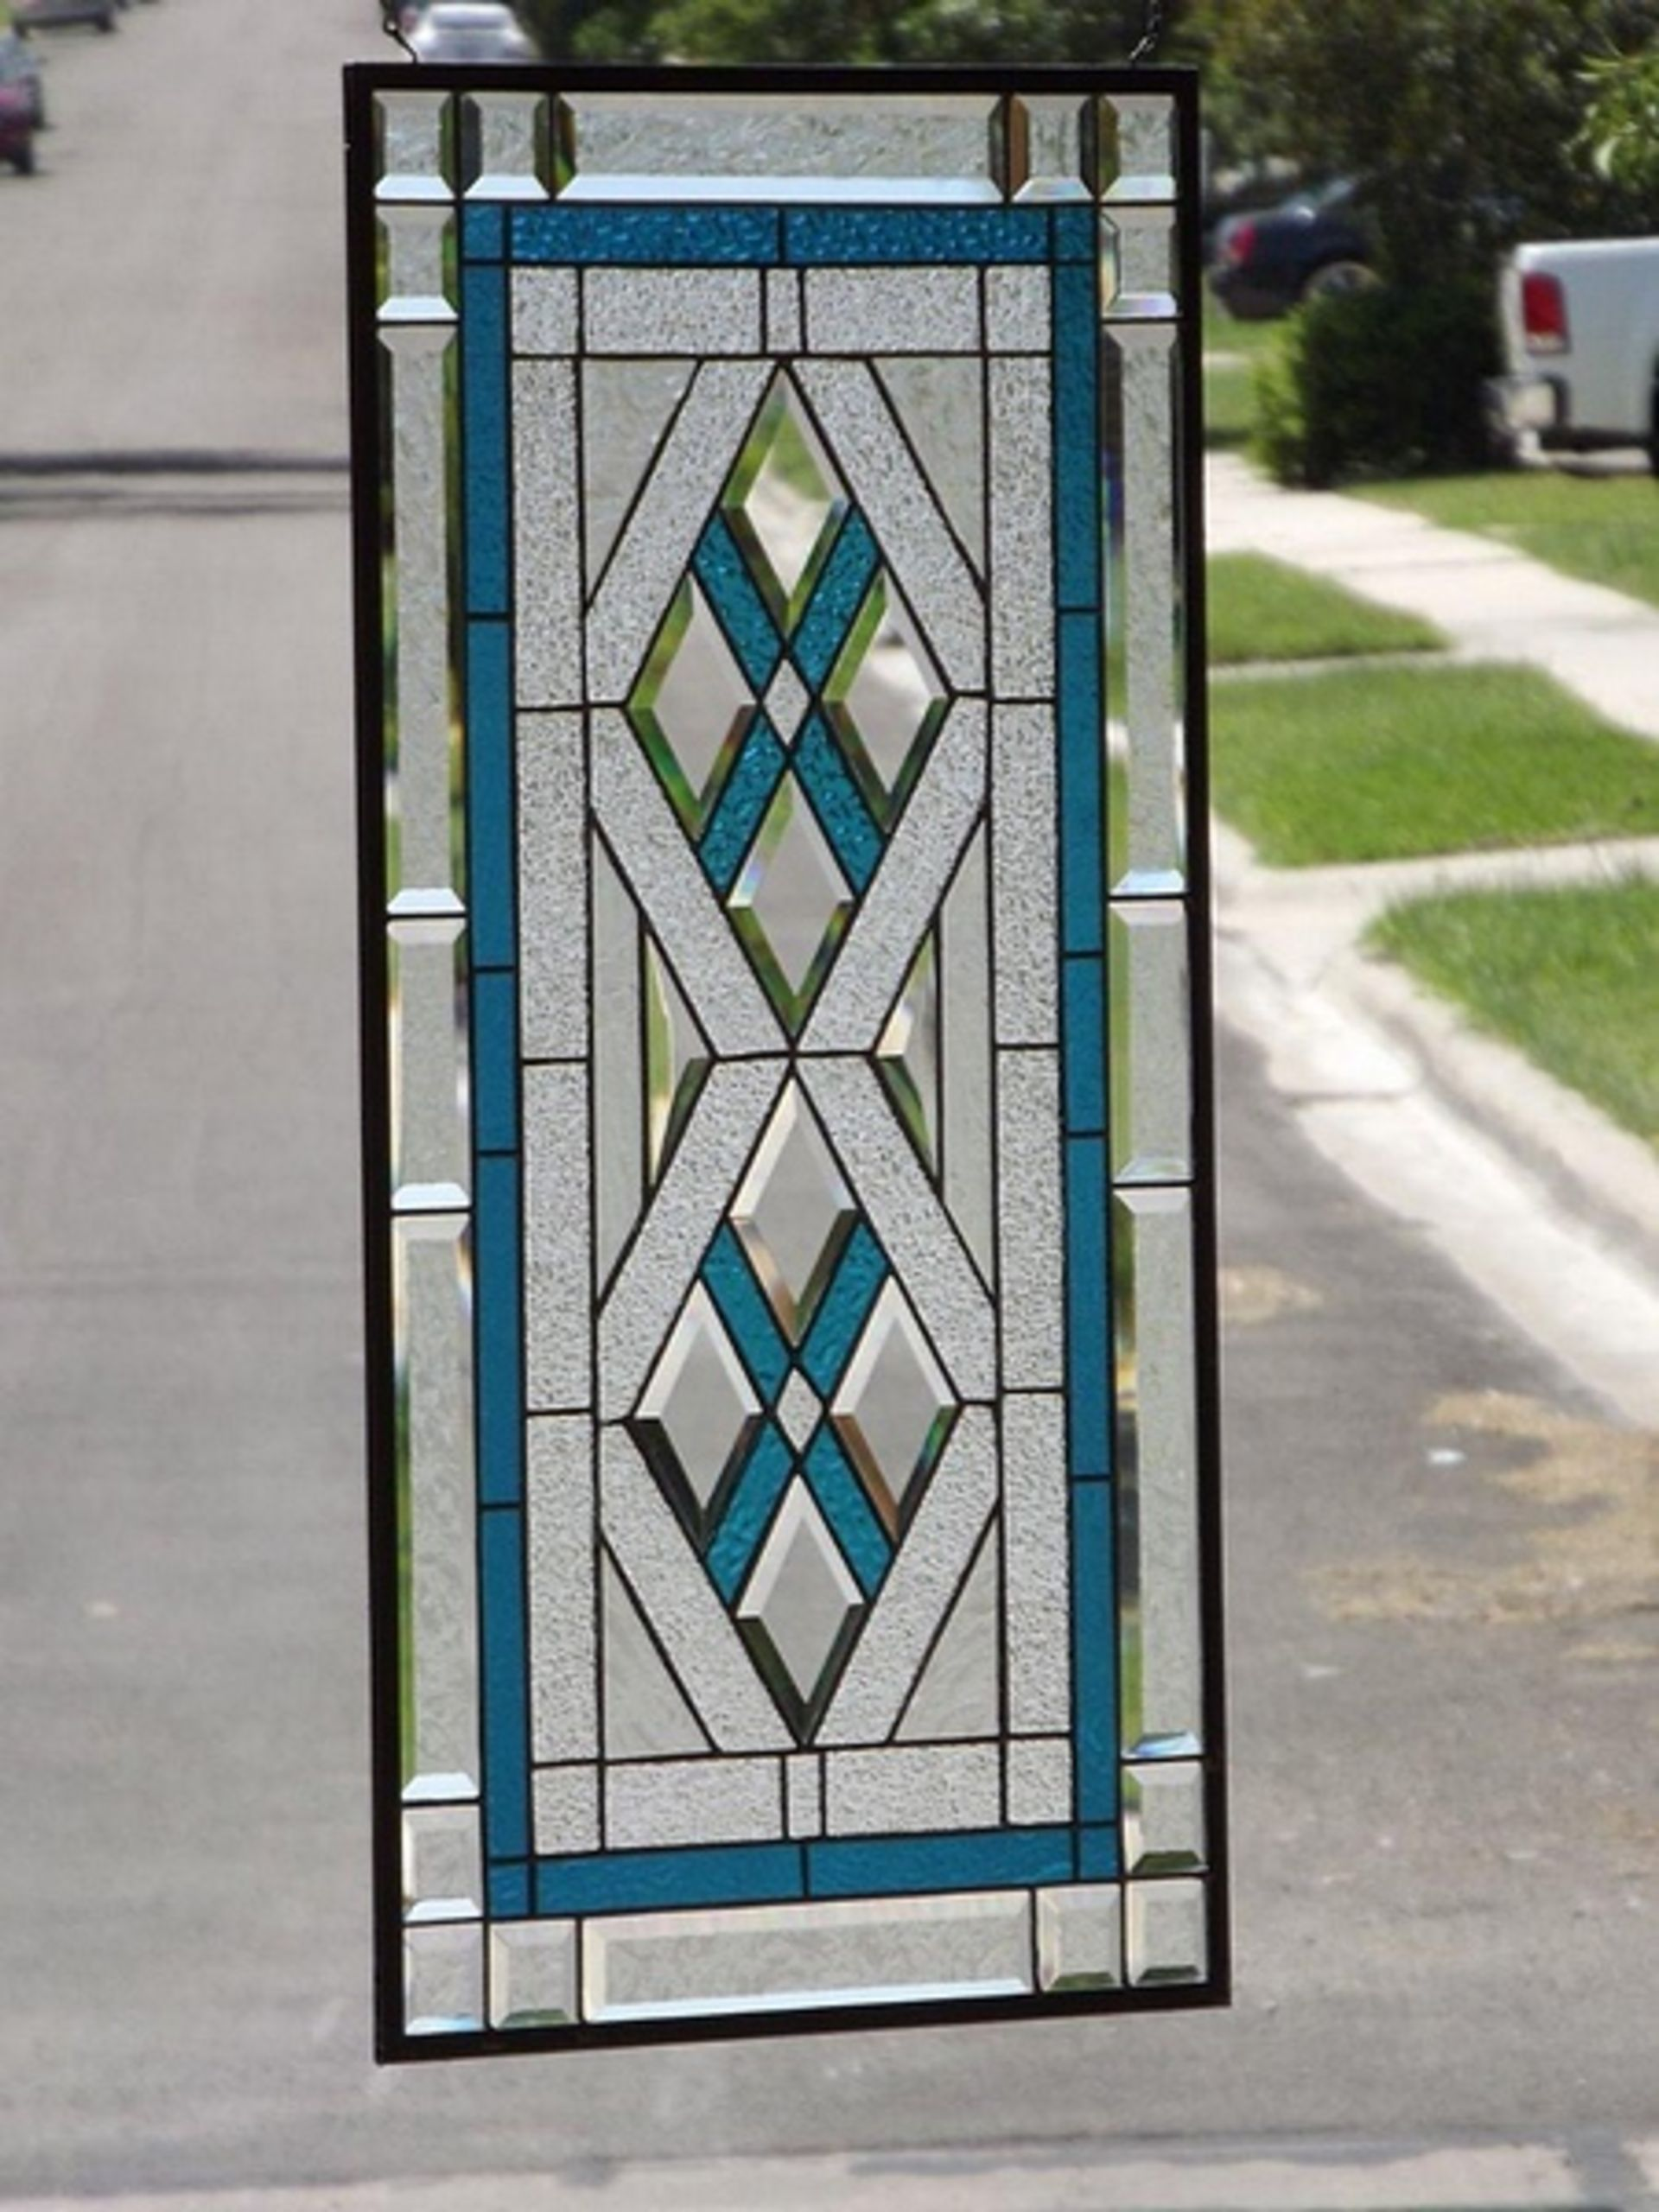 Lot 564 - Stained Glass - Mystique Bevelled Stained Glass Panel Handmade By Chris Gleim Line Art Glass And